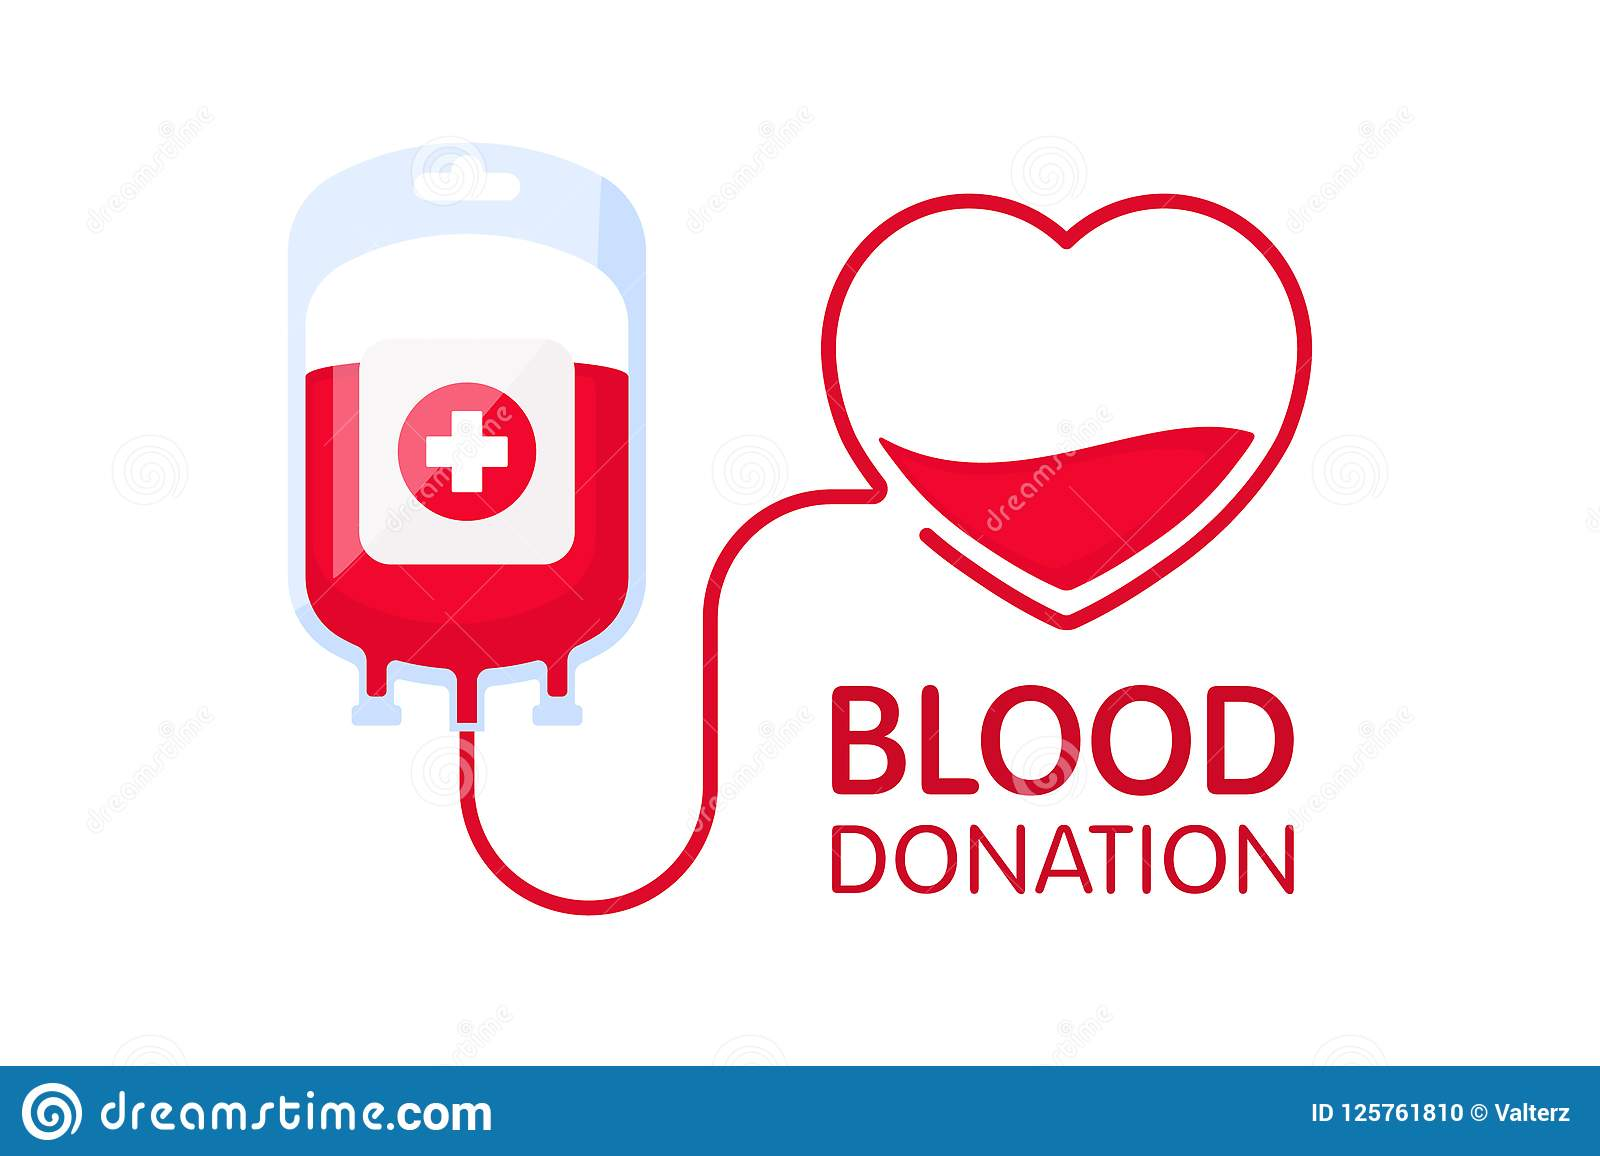 BLOOD DONATION - LET'S DONATE